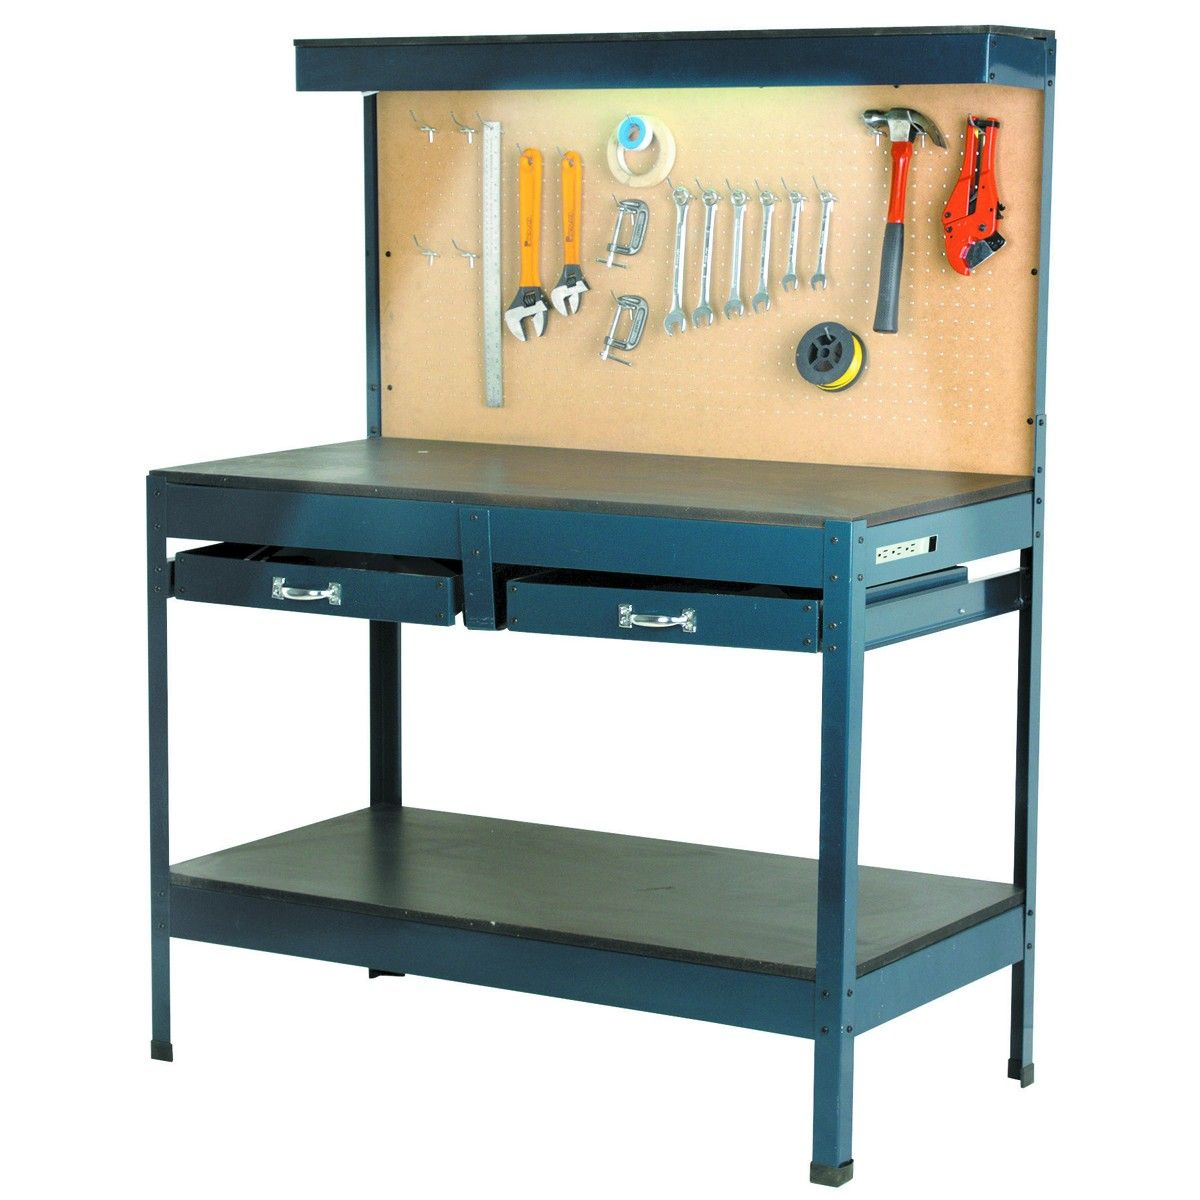 Garage Workbench W Lighting And Outlets Harbor Freight Got It For Cheap Will Be Good For My Clipper Set Up Workbench Workbench Designs Mobile Workbench